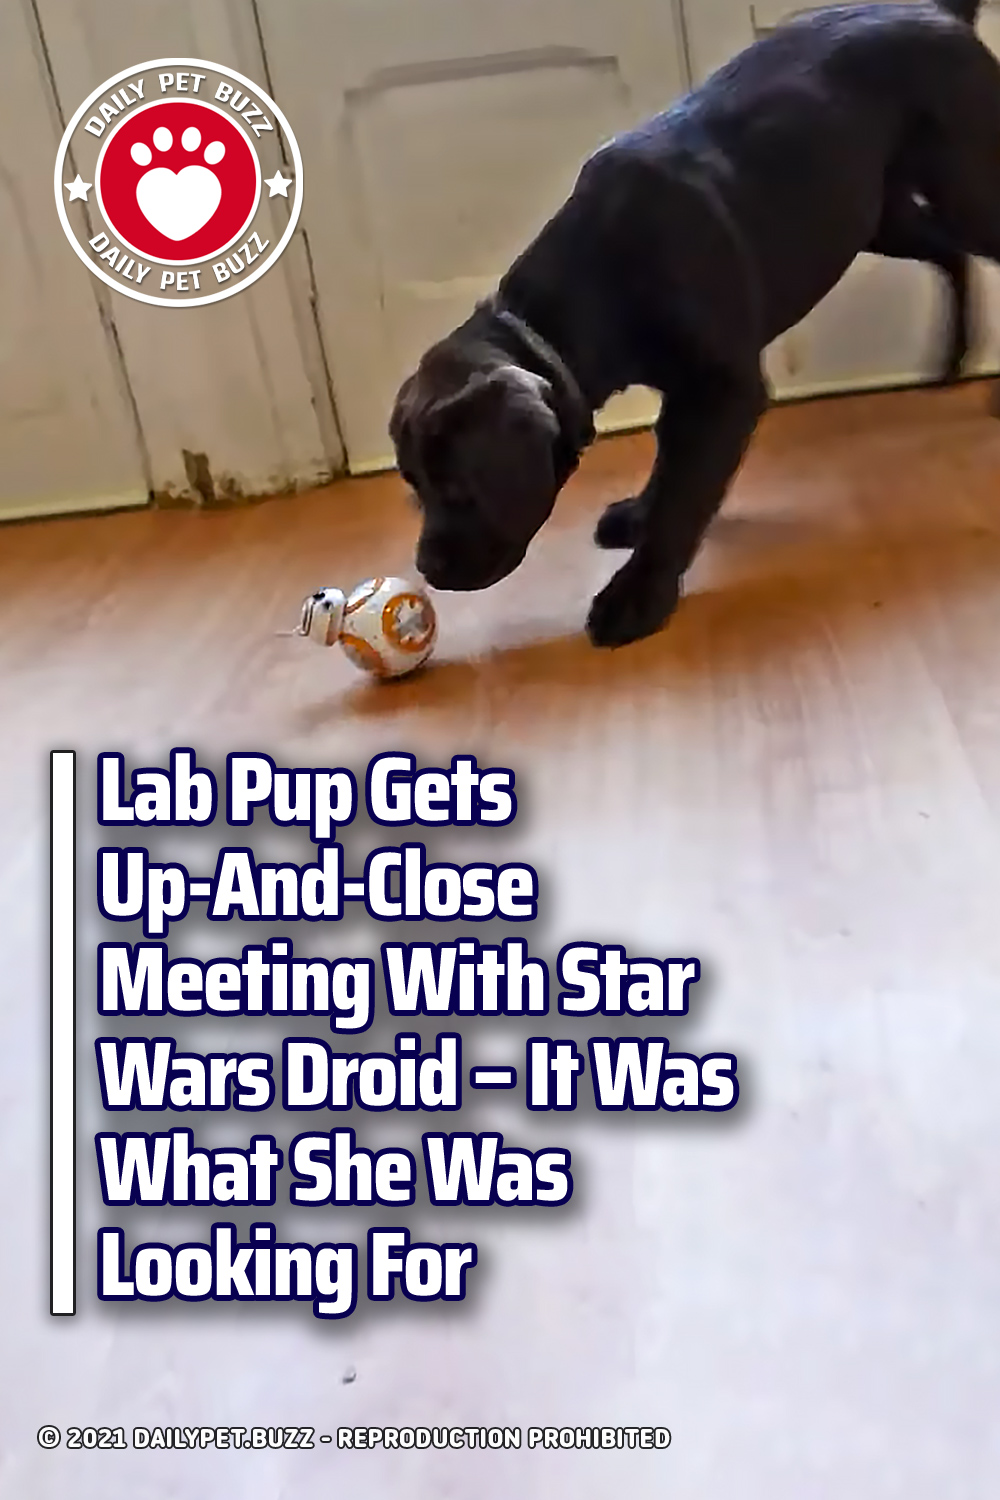 Lab Pup Gets Up-And-Close Meeting With Star Wars Droid. It Was What She Was Looking For